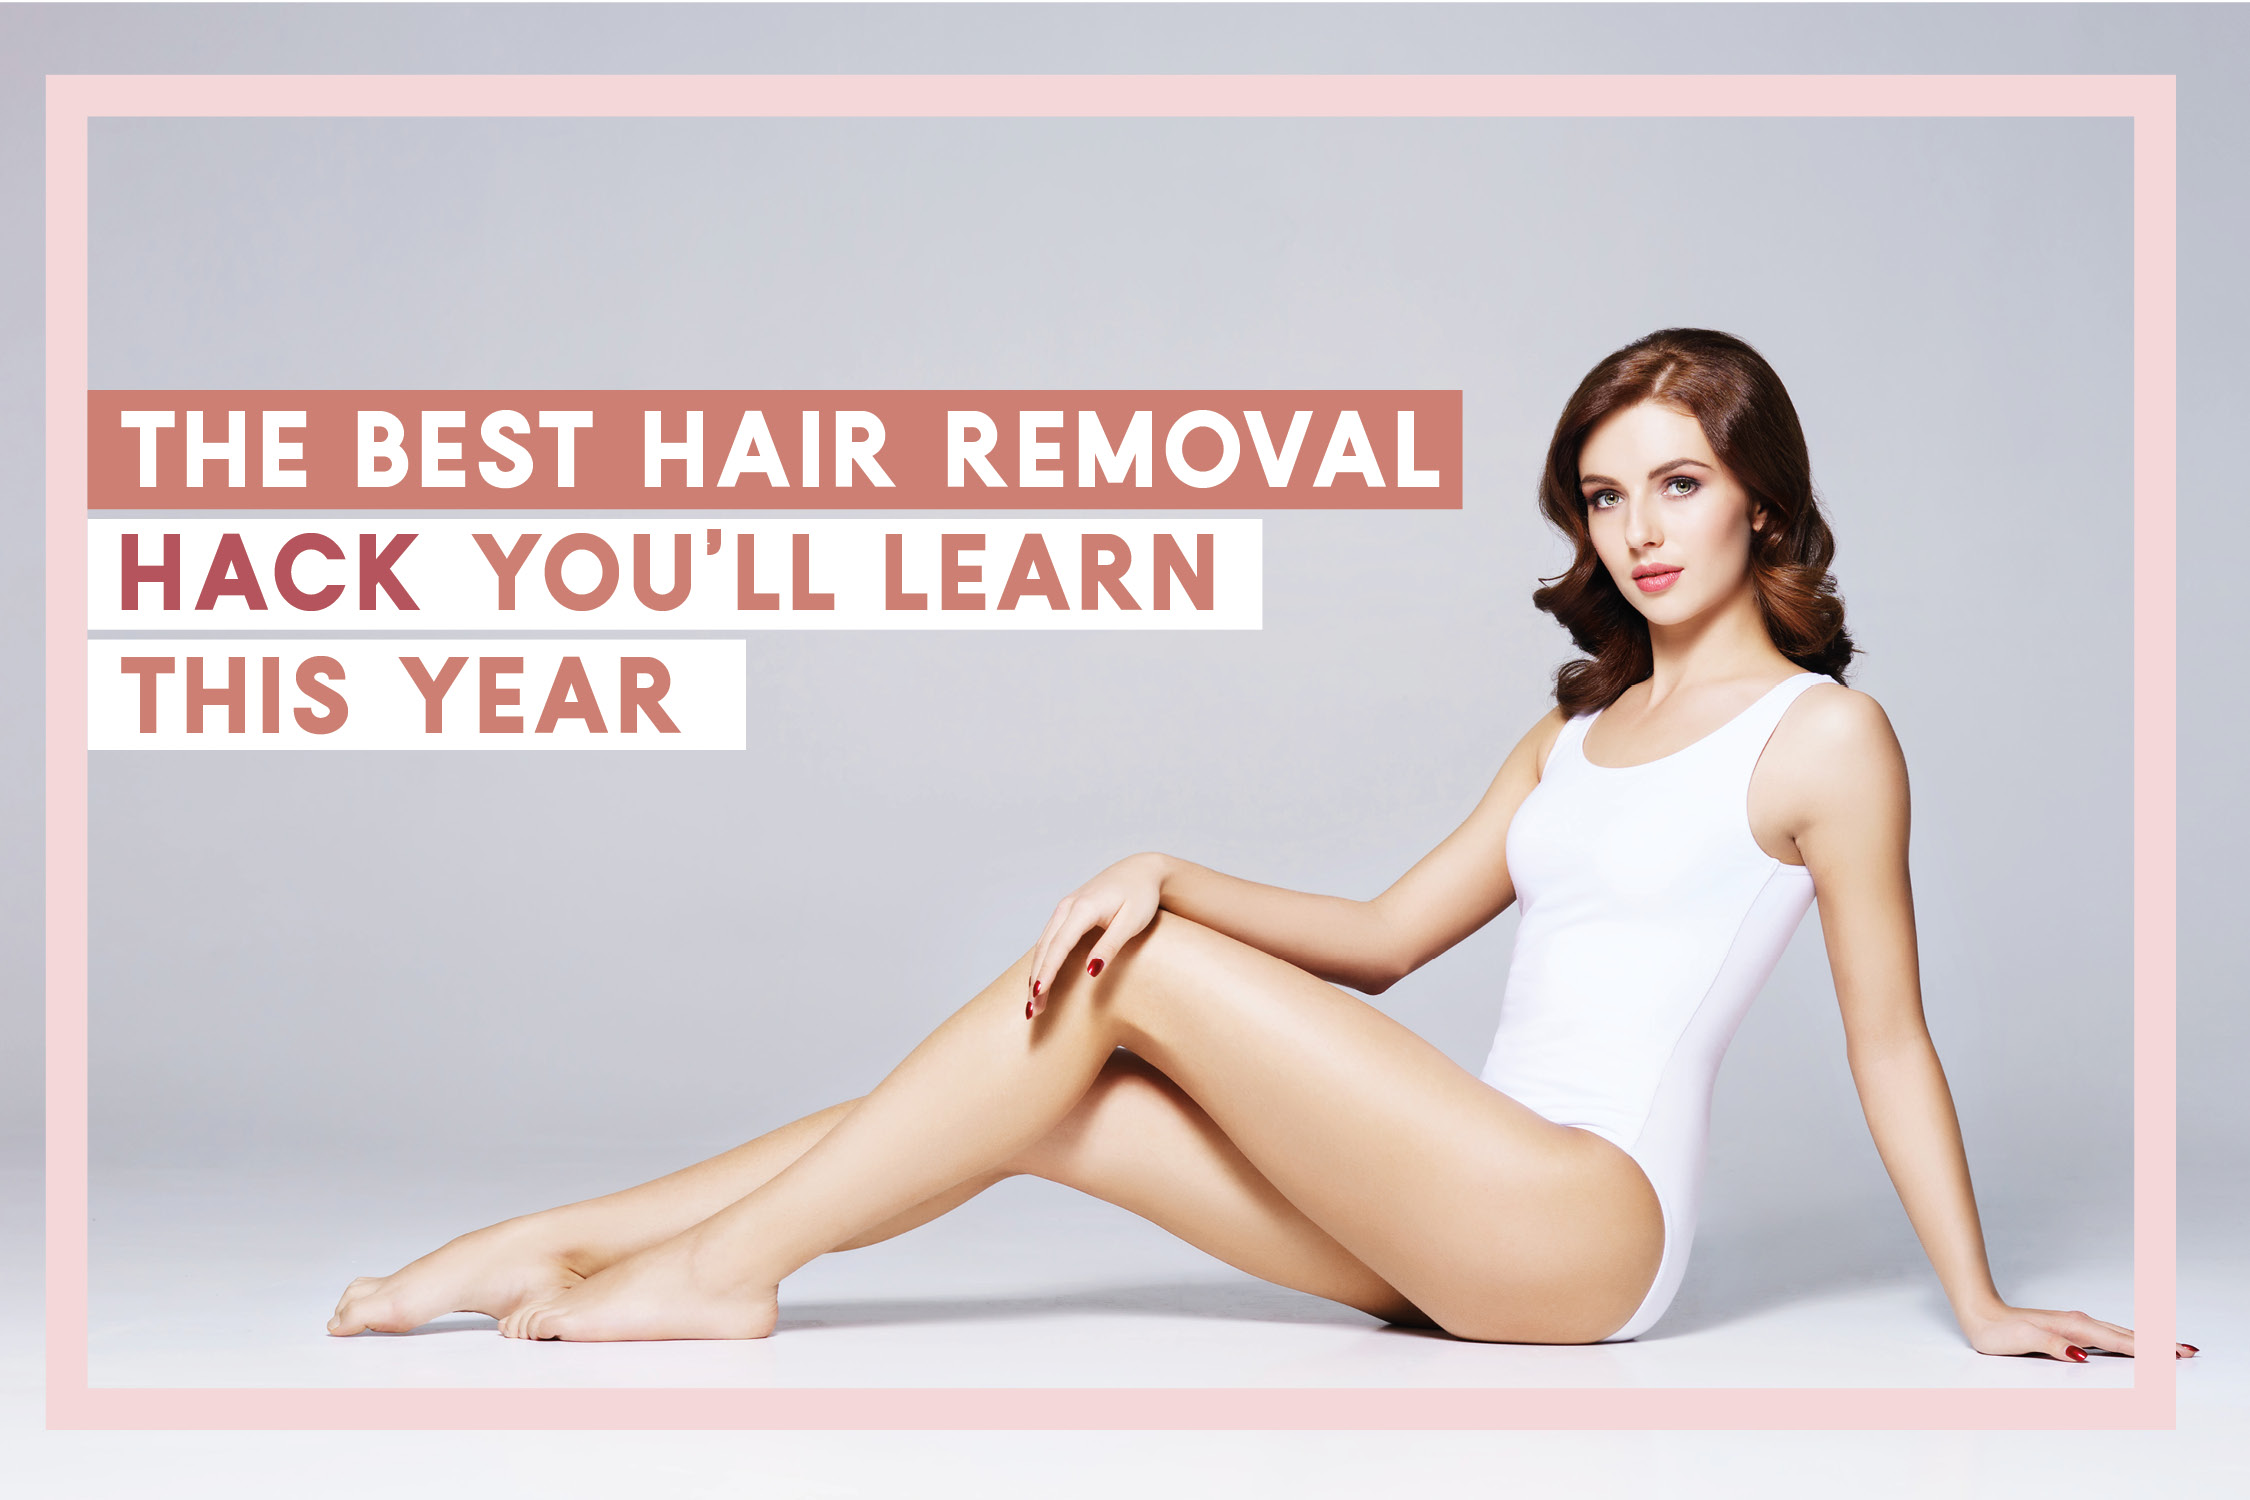 The Best Hair Removal Hack You'll Learn This Year